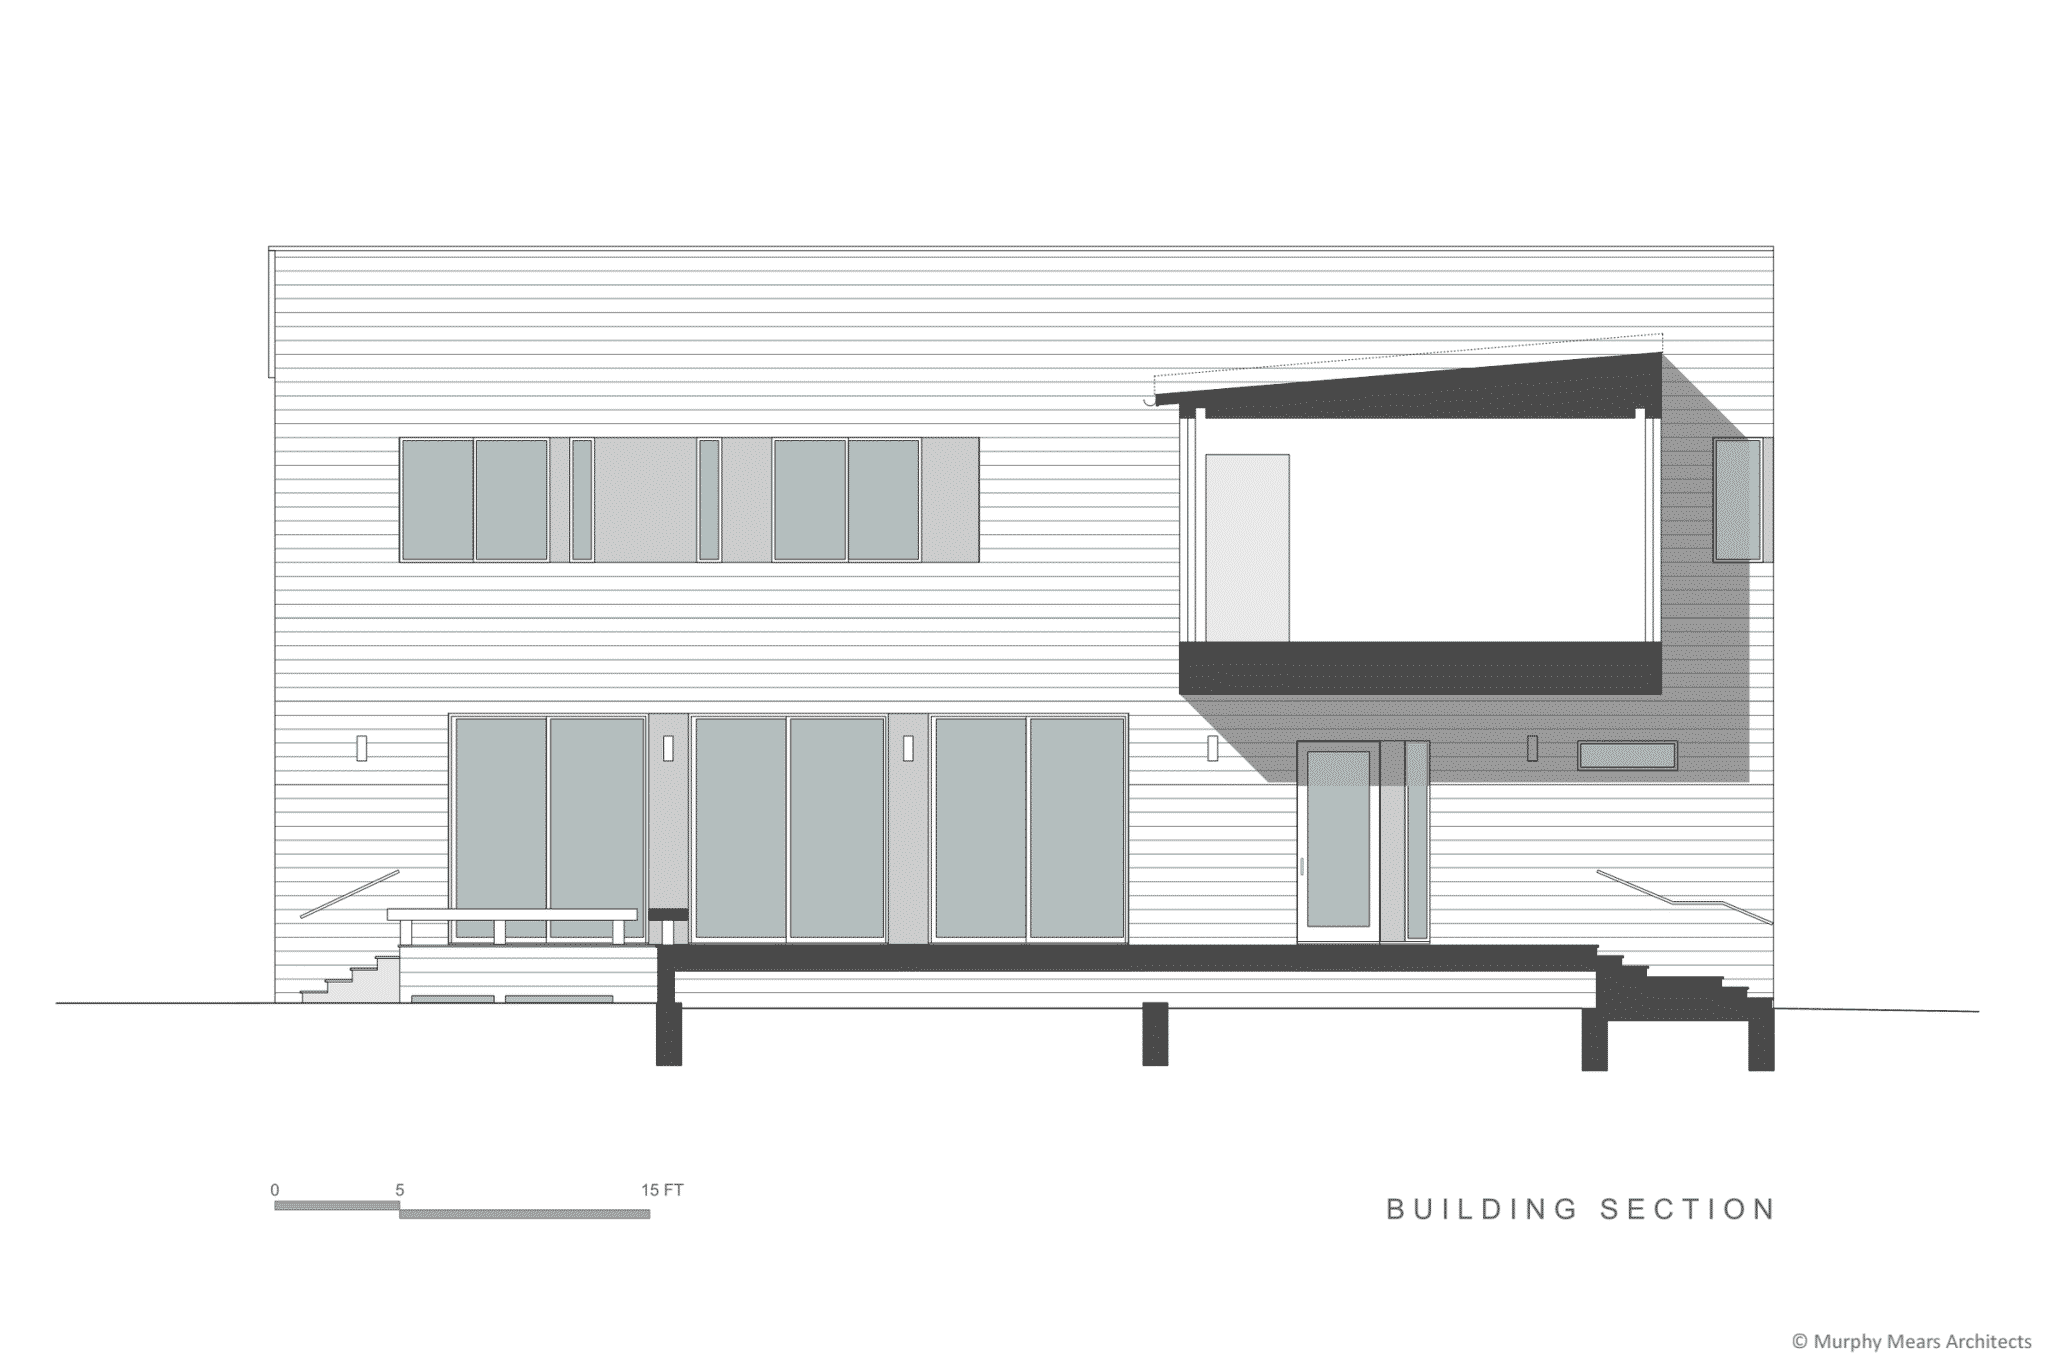 Section through the covered entry, raised terrace, and floating master bedroom.